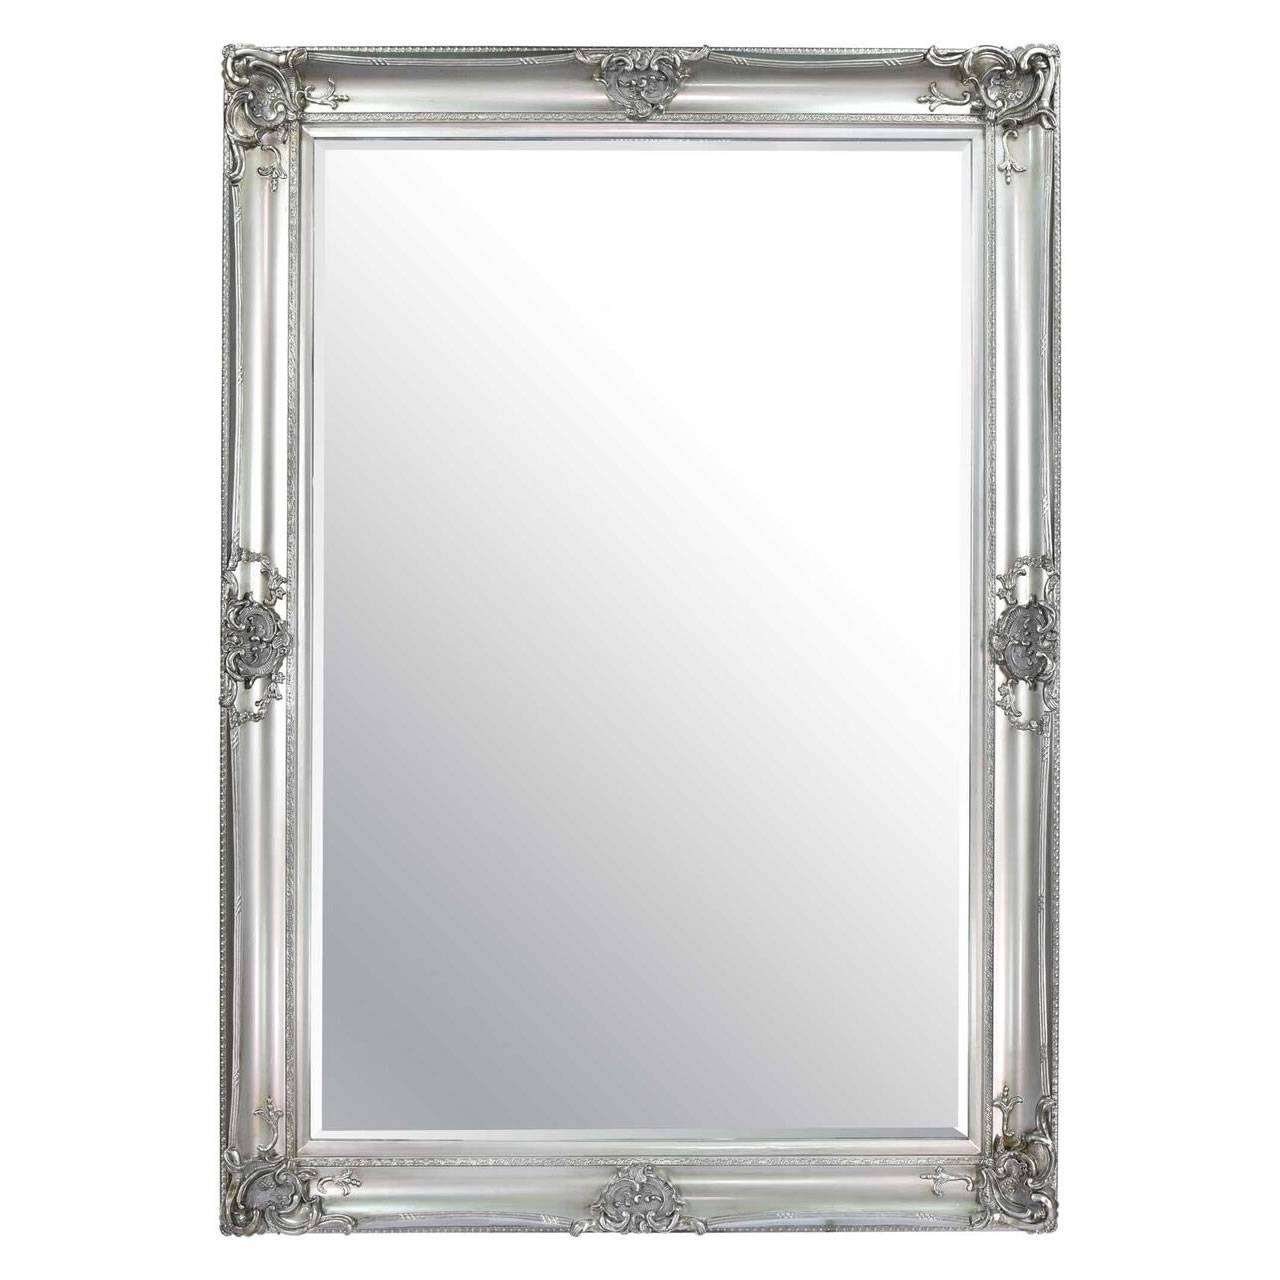 Mirror : 4Ft11 X 3Ft4 Large Silver Carved Ornate Wall Mounted inside Large Black Ornate Mirrors (Image 6 of 15)